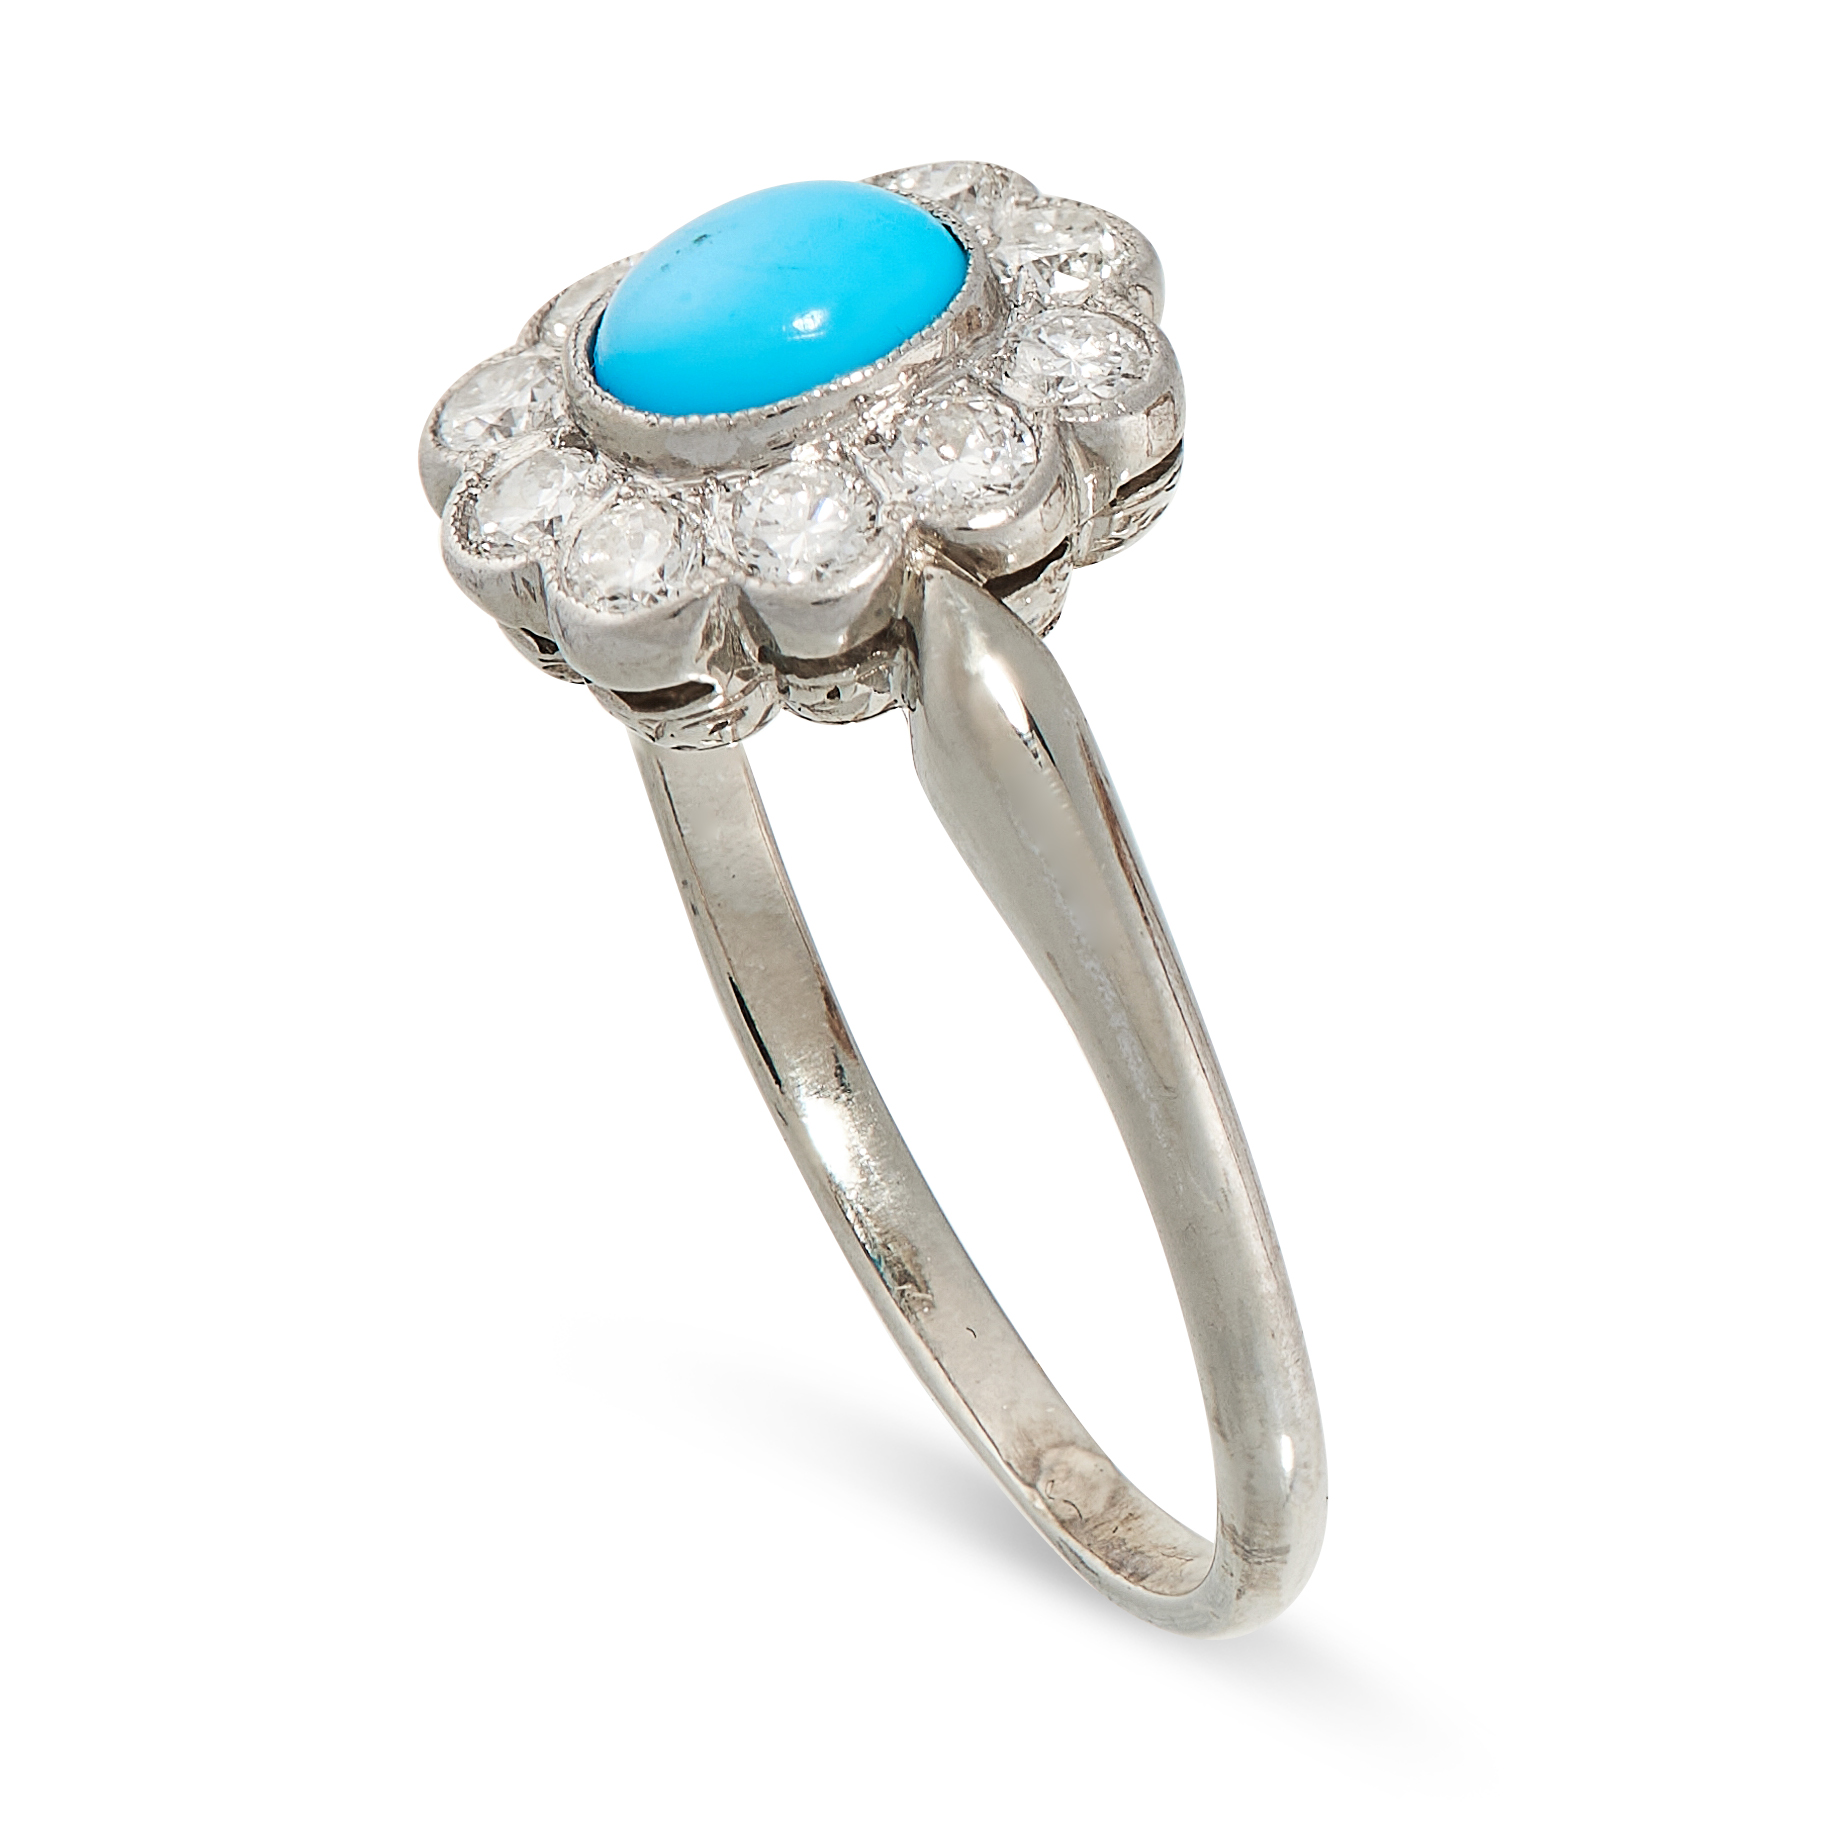 A VINTAGE TURQUOISE AND DIAMOND DRESS RING in 14ct white gold, set with an oval cabochon turquoise - Image 2 of 2